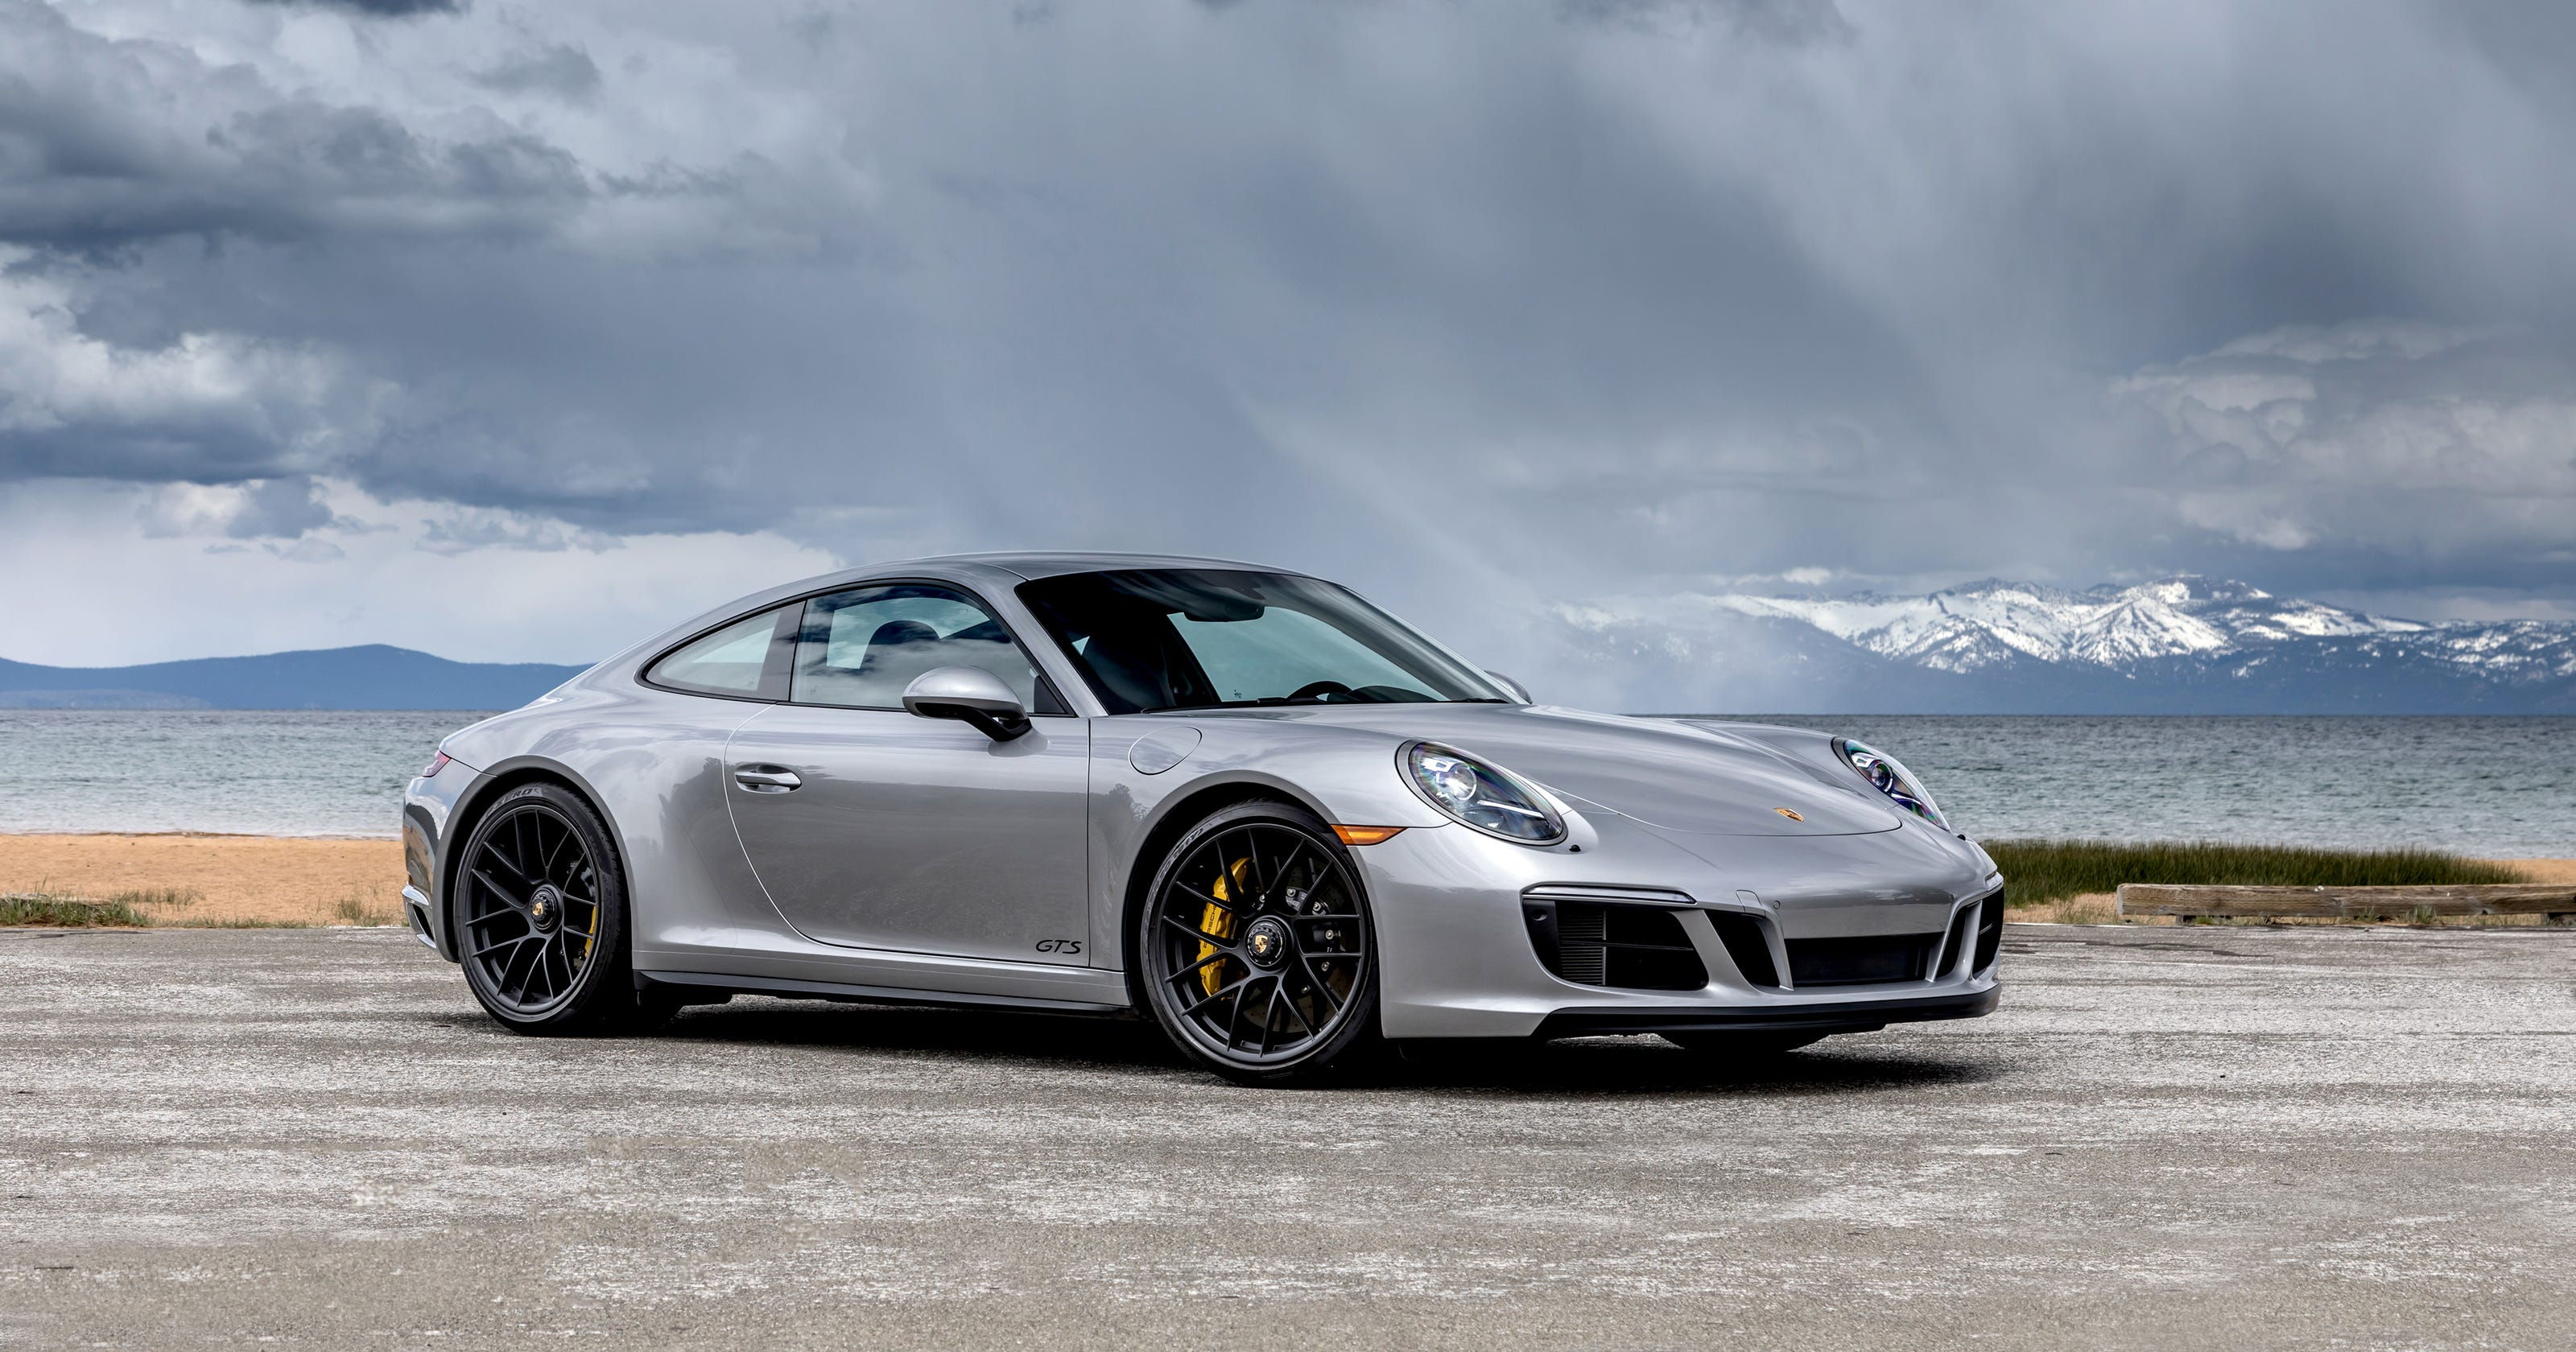 carrera gts may be porsche's best 911 — and the bargain of the family